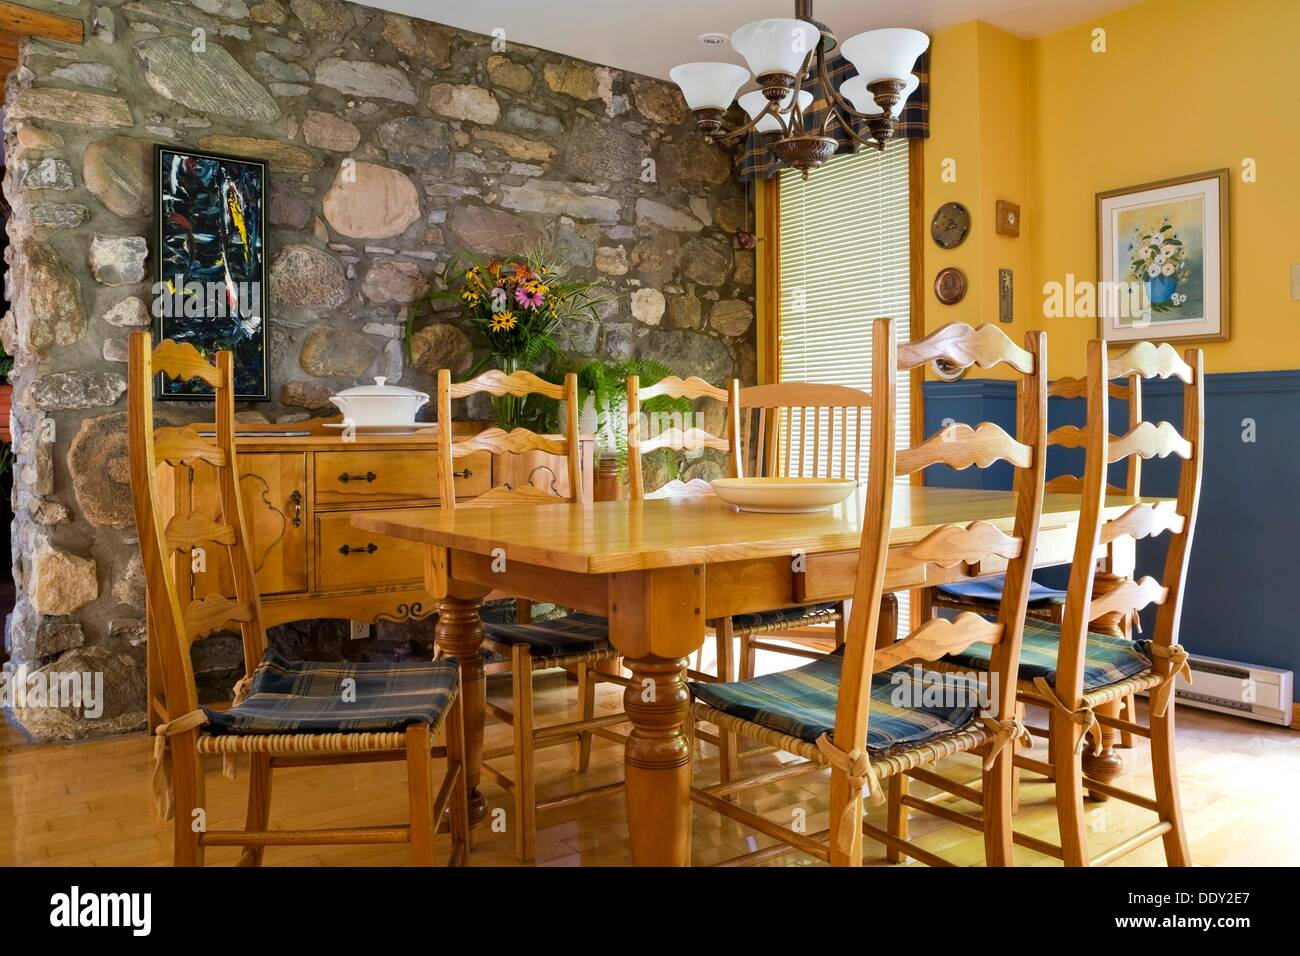 table ancienne des chaises et des meubles dans la cuisine d 39 un vieux style cottage canadiana. Black Bedroom Furniture Sets. Home Design Ideas